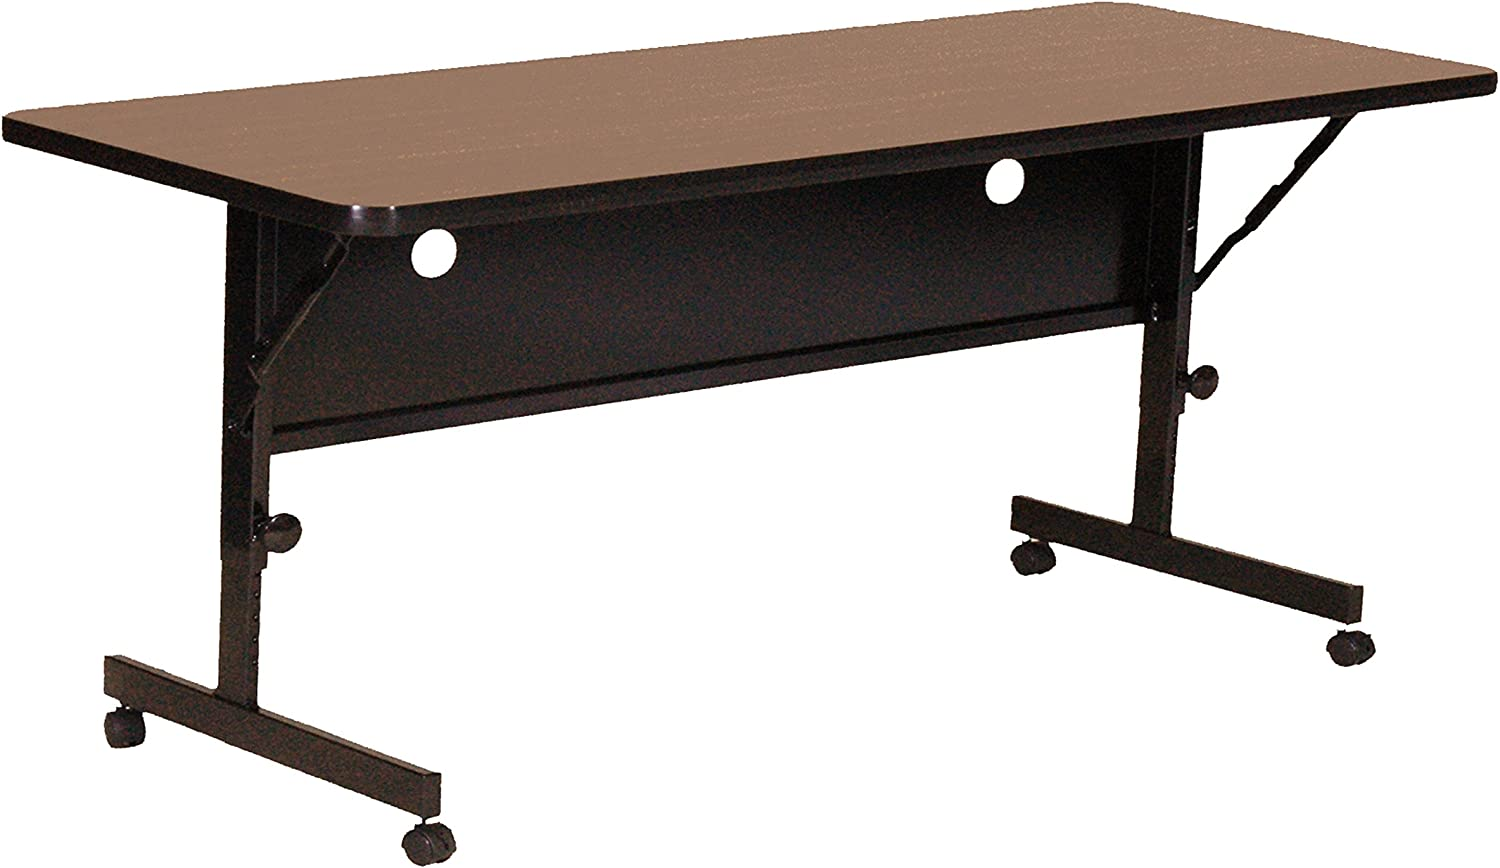 "Correll Deluxe Flip Top Table, 24"" x 48"", Walnut High Pressure Laminate Top, Rectangle,"